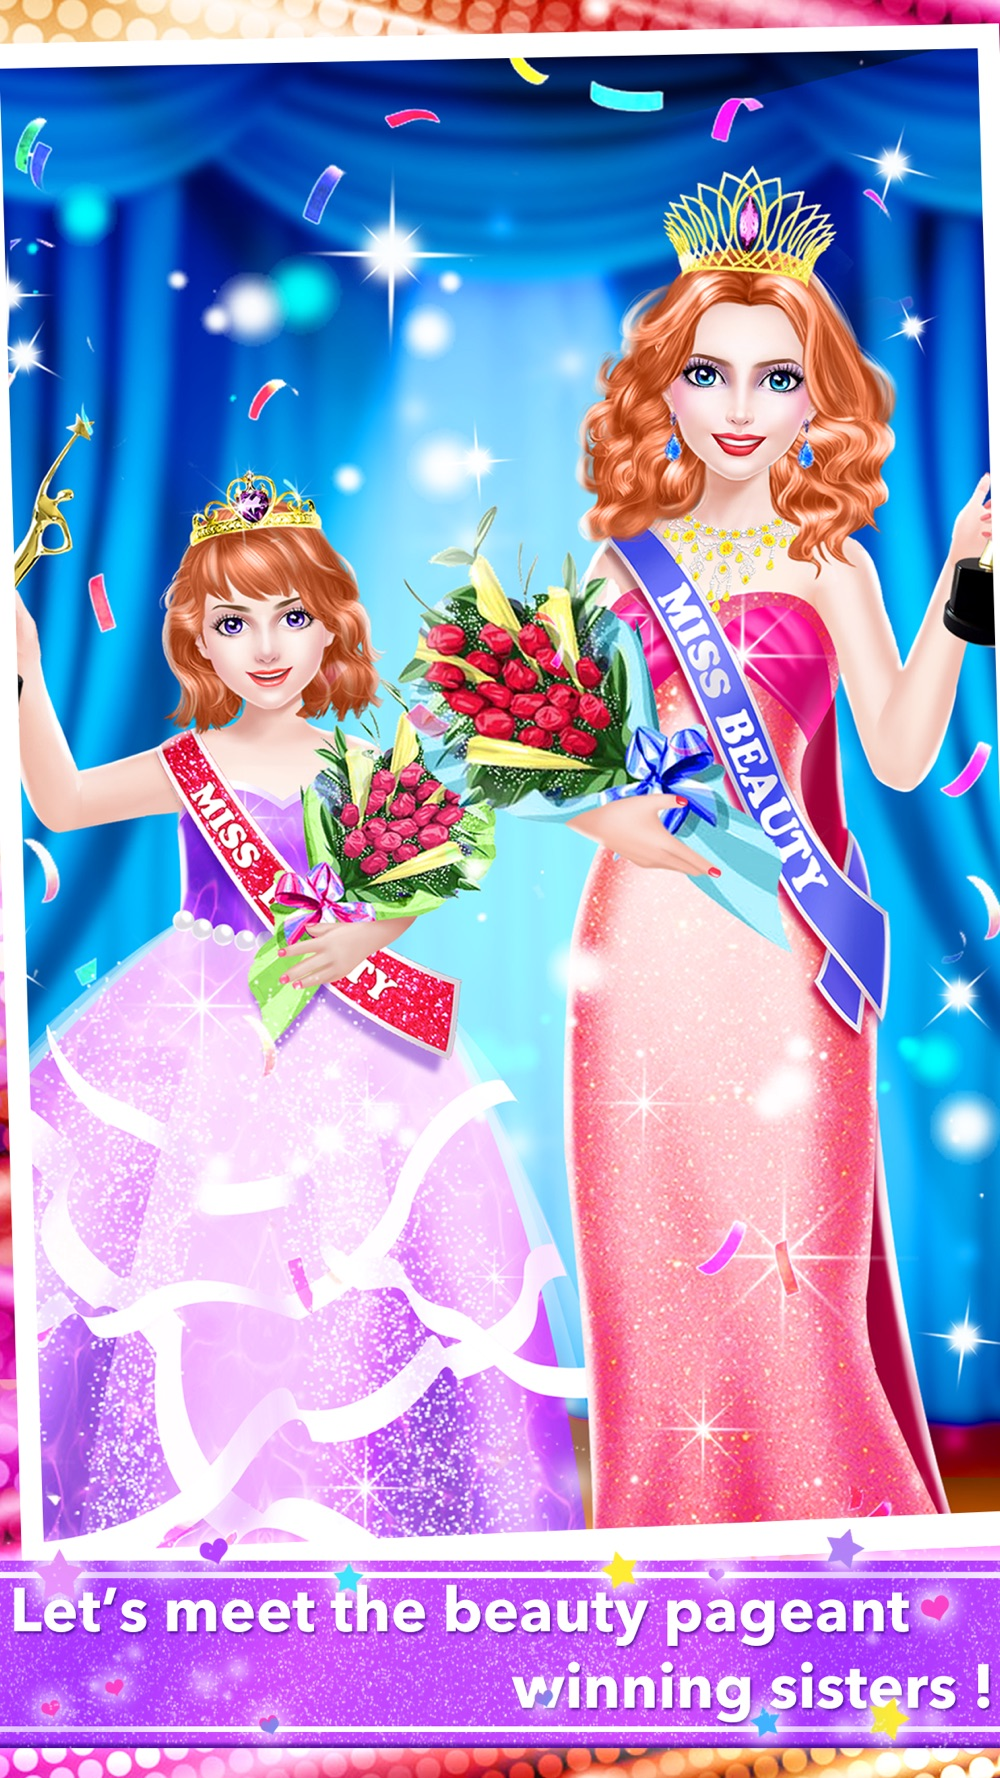 Sisters Beauty Contest – Pageant Queen Salon: Royal SPA, Makeup & Dressup Girls Game for FREE Cheat Codes